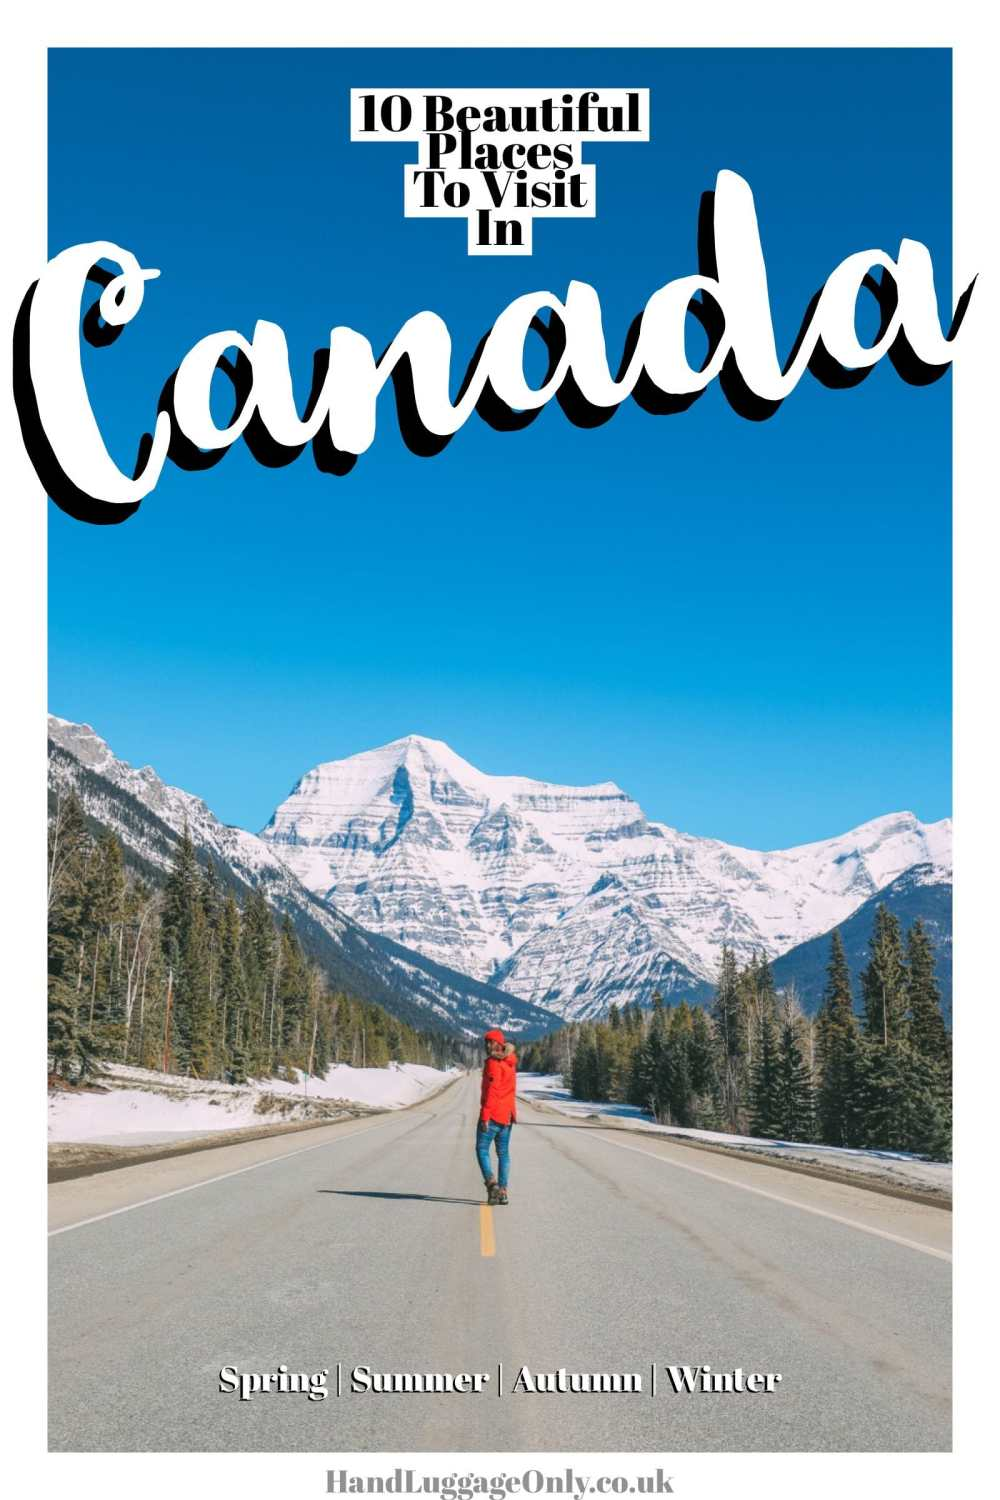 10 Beautiful Places In Canada To Visit In Summer And Winter (1)